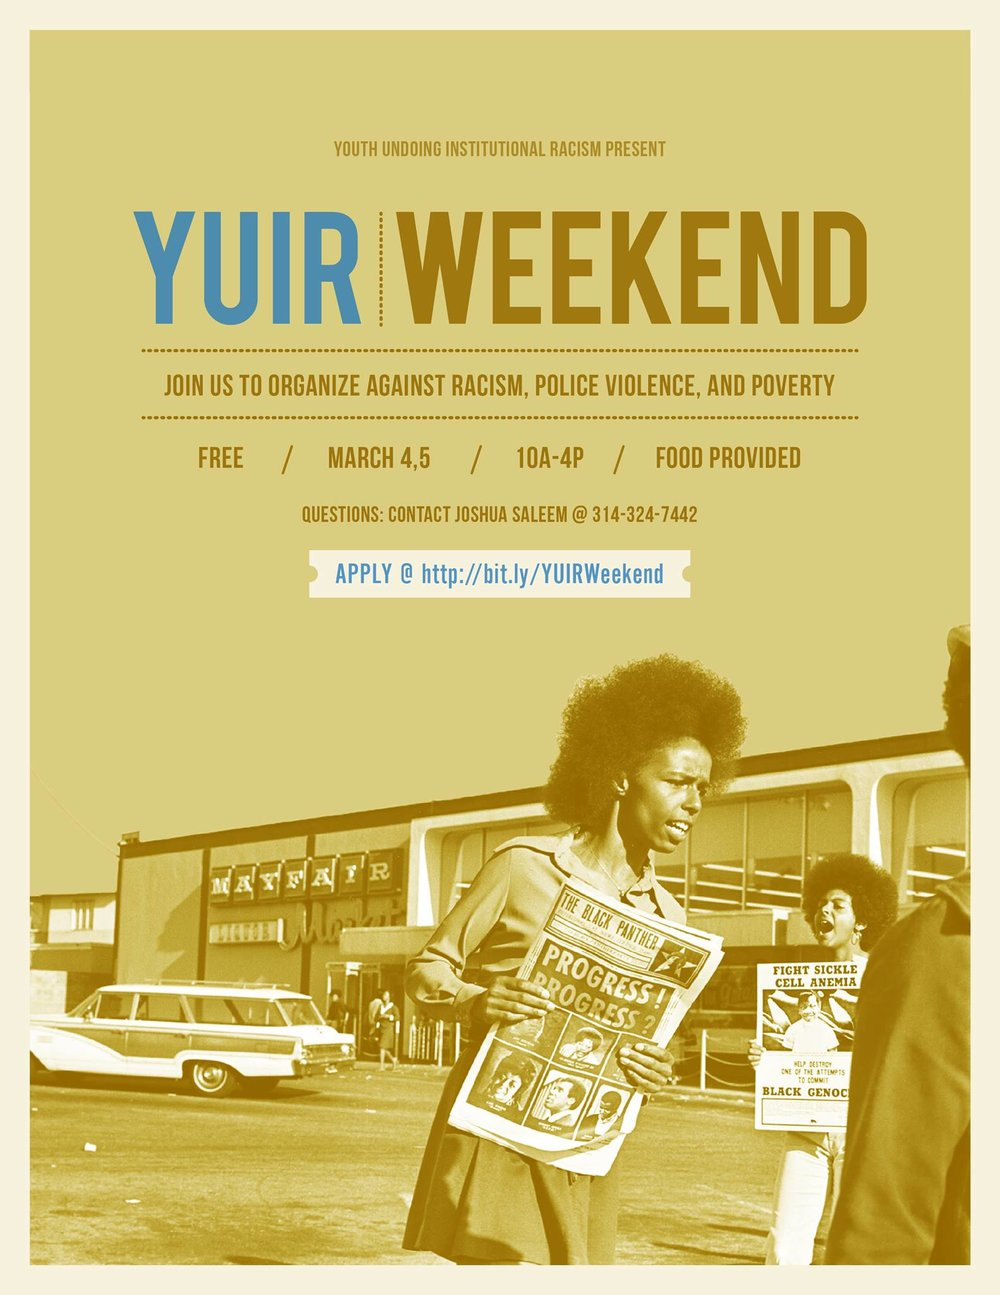 Youth Undoing Institutional Racism Weekend is a (FREE) two day workshop that focuses on analyzing oppressive systems and the social construct of race. It's geared toward youth ages 15-23, but all are welcomed. Join us to learn about and organize against systems (criminal justice, education, etc.) that work to the benefit of those who have come to be called white but often hinder people of color.